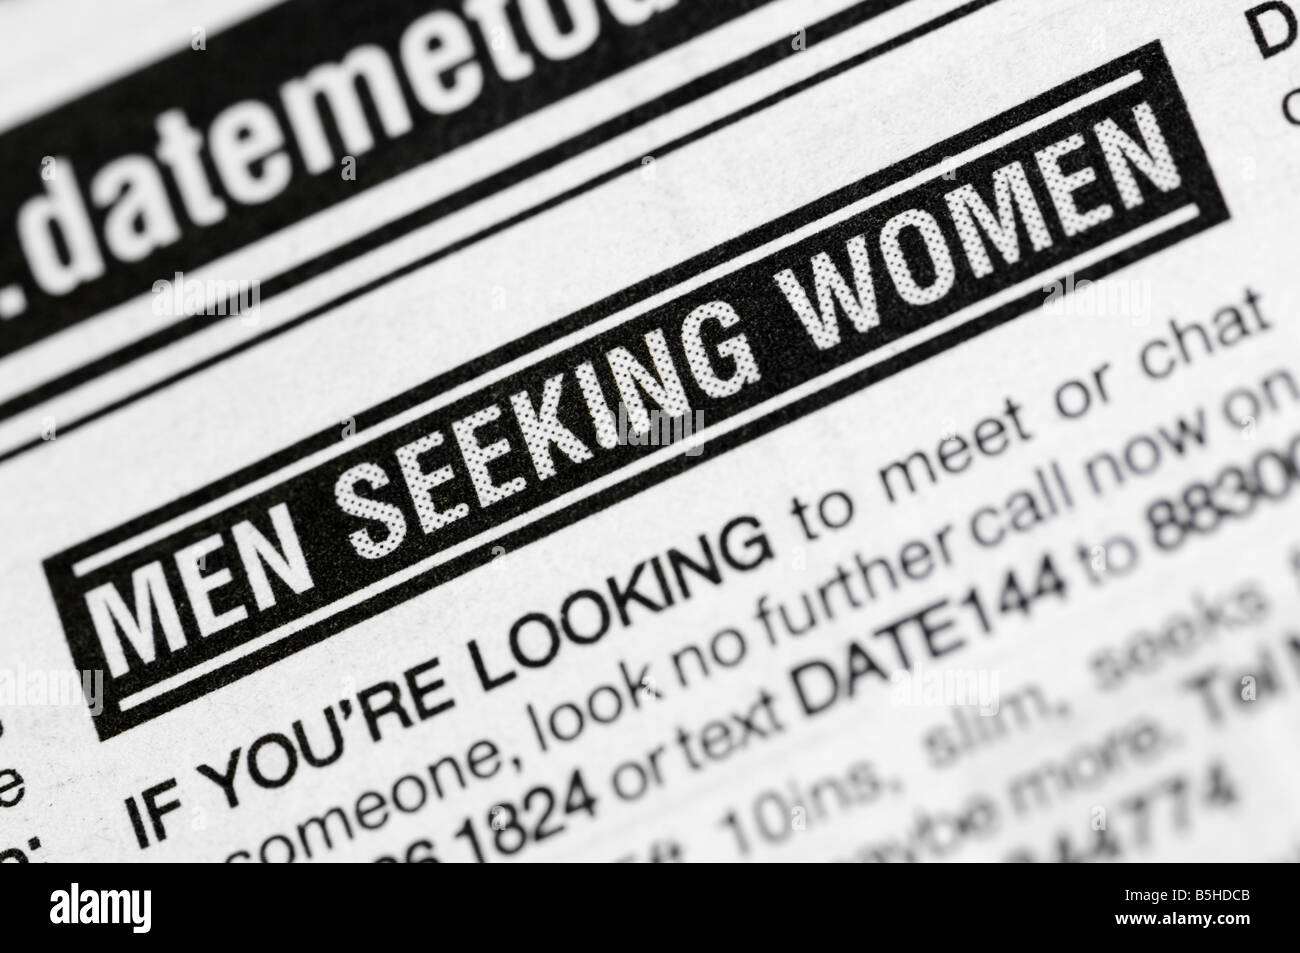 Smart ads of women seeking men